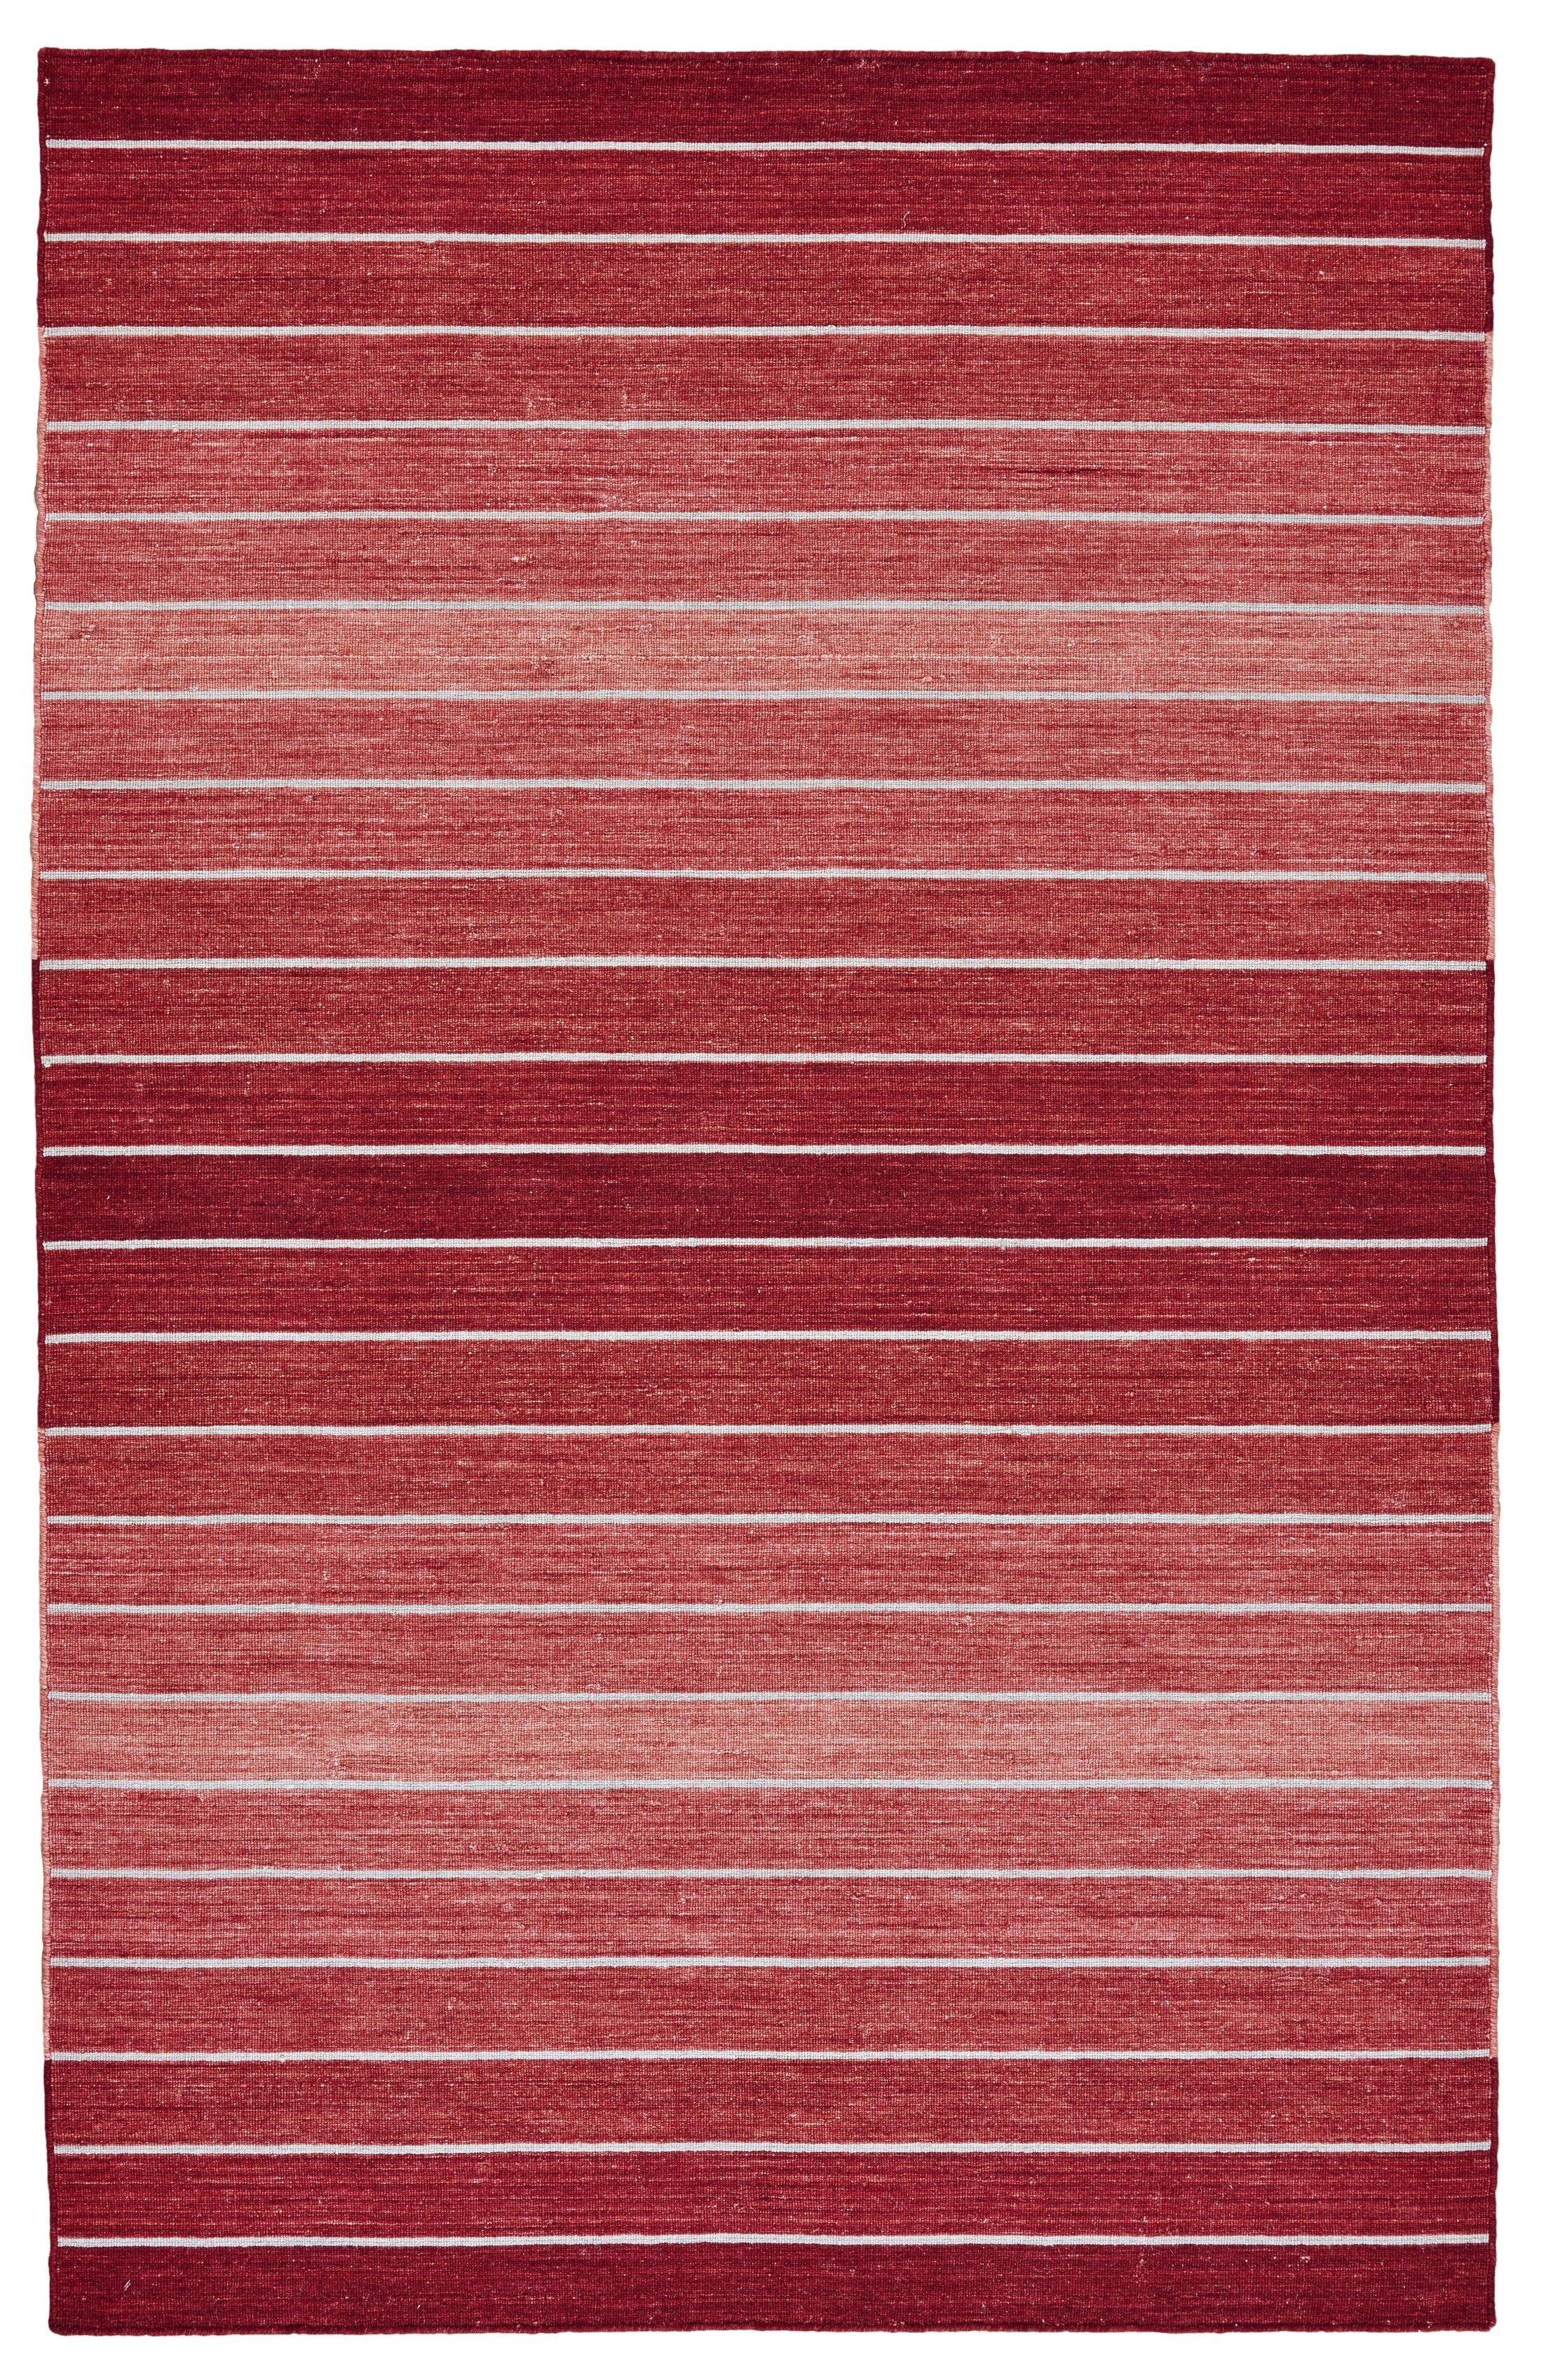 Mcdonald Hand-Loomed Red Area Rug Rug Size: Rectangle 4' x 6'